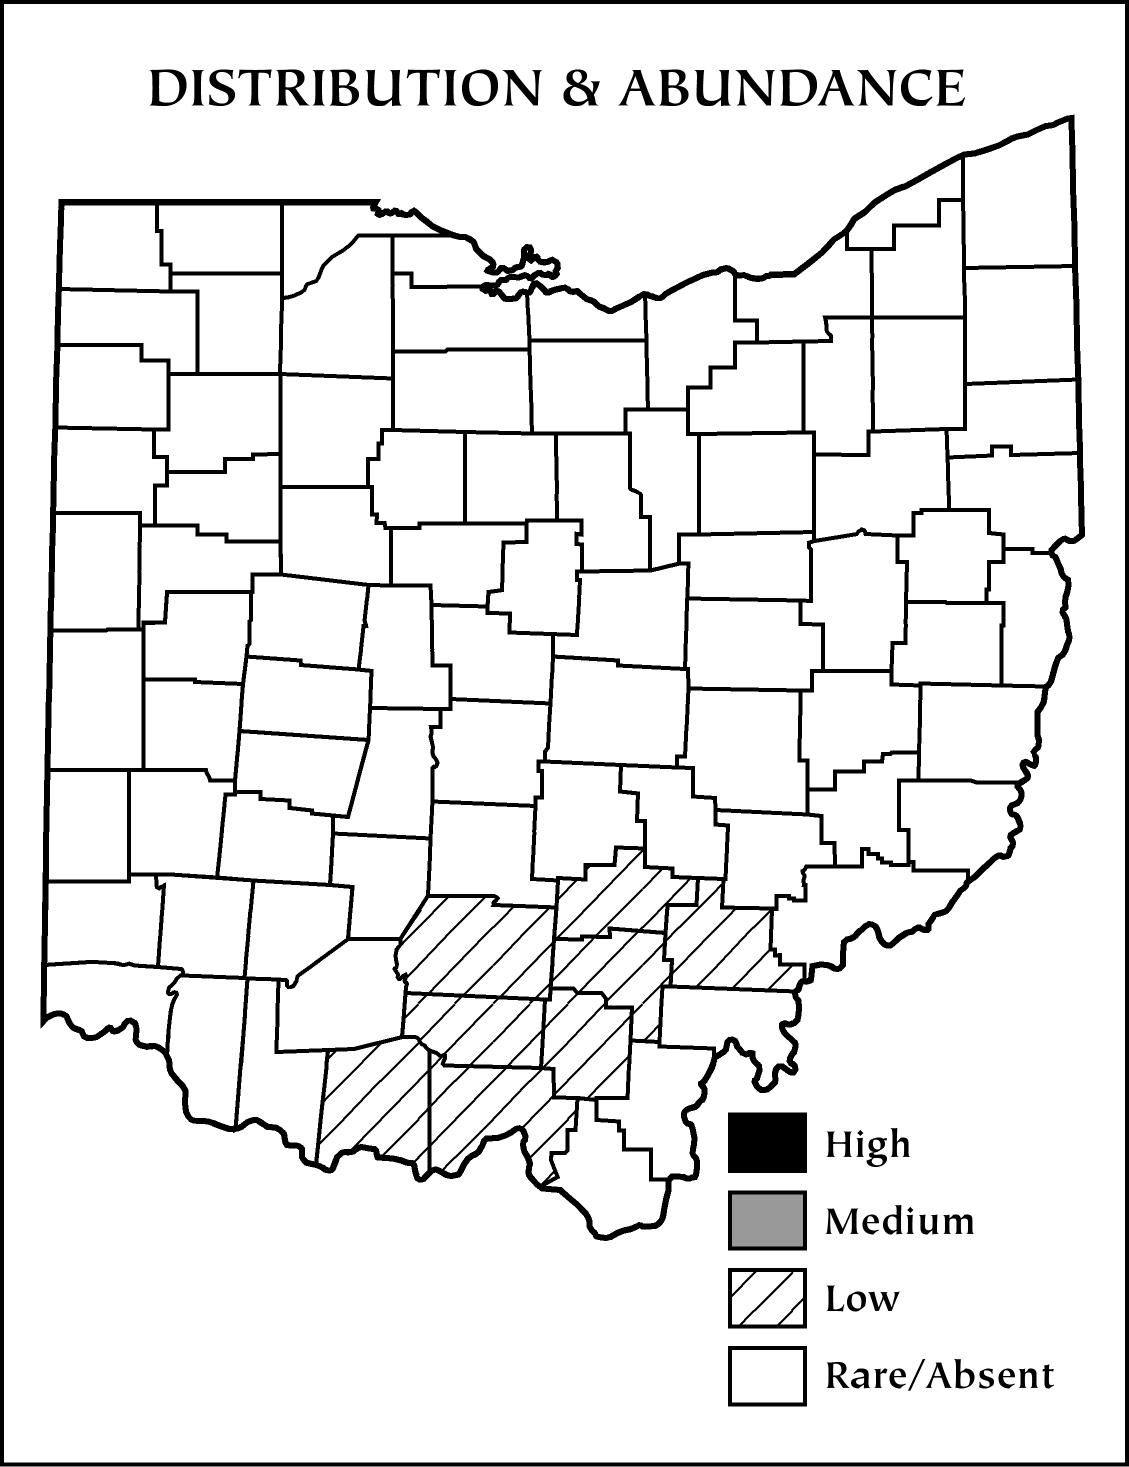 the current range of the timber rattlesnake in ohio map courtesy of the ohio division of wildlife